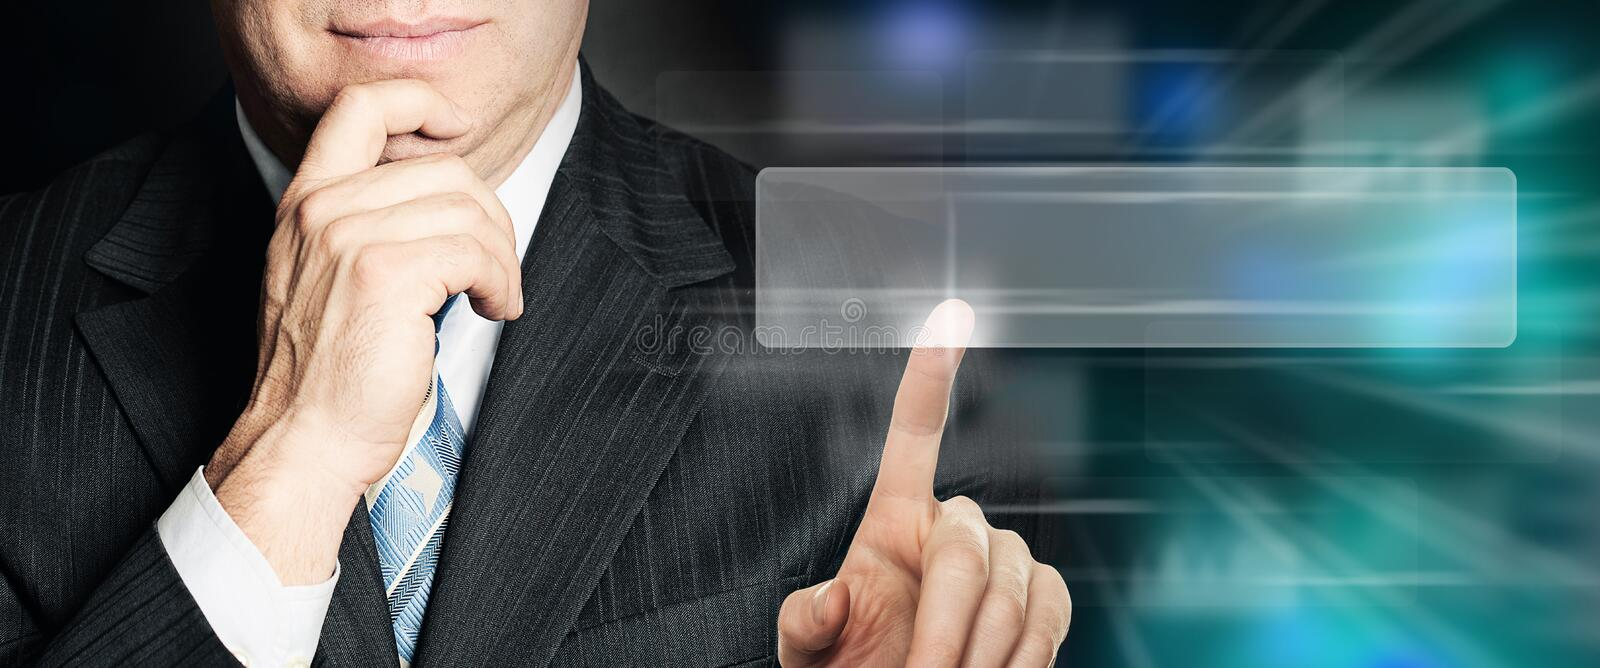 Business man pointing to empty address bar in virtual browser. Seo, internet marketing and advertising marketing concept.  royalty free stock images